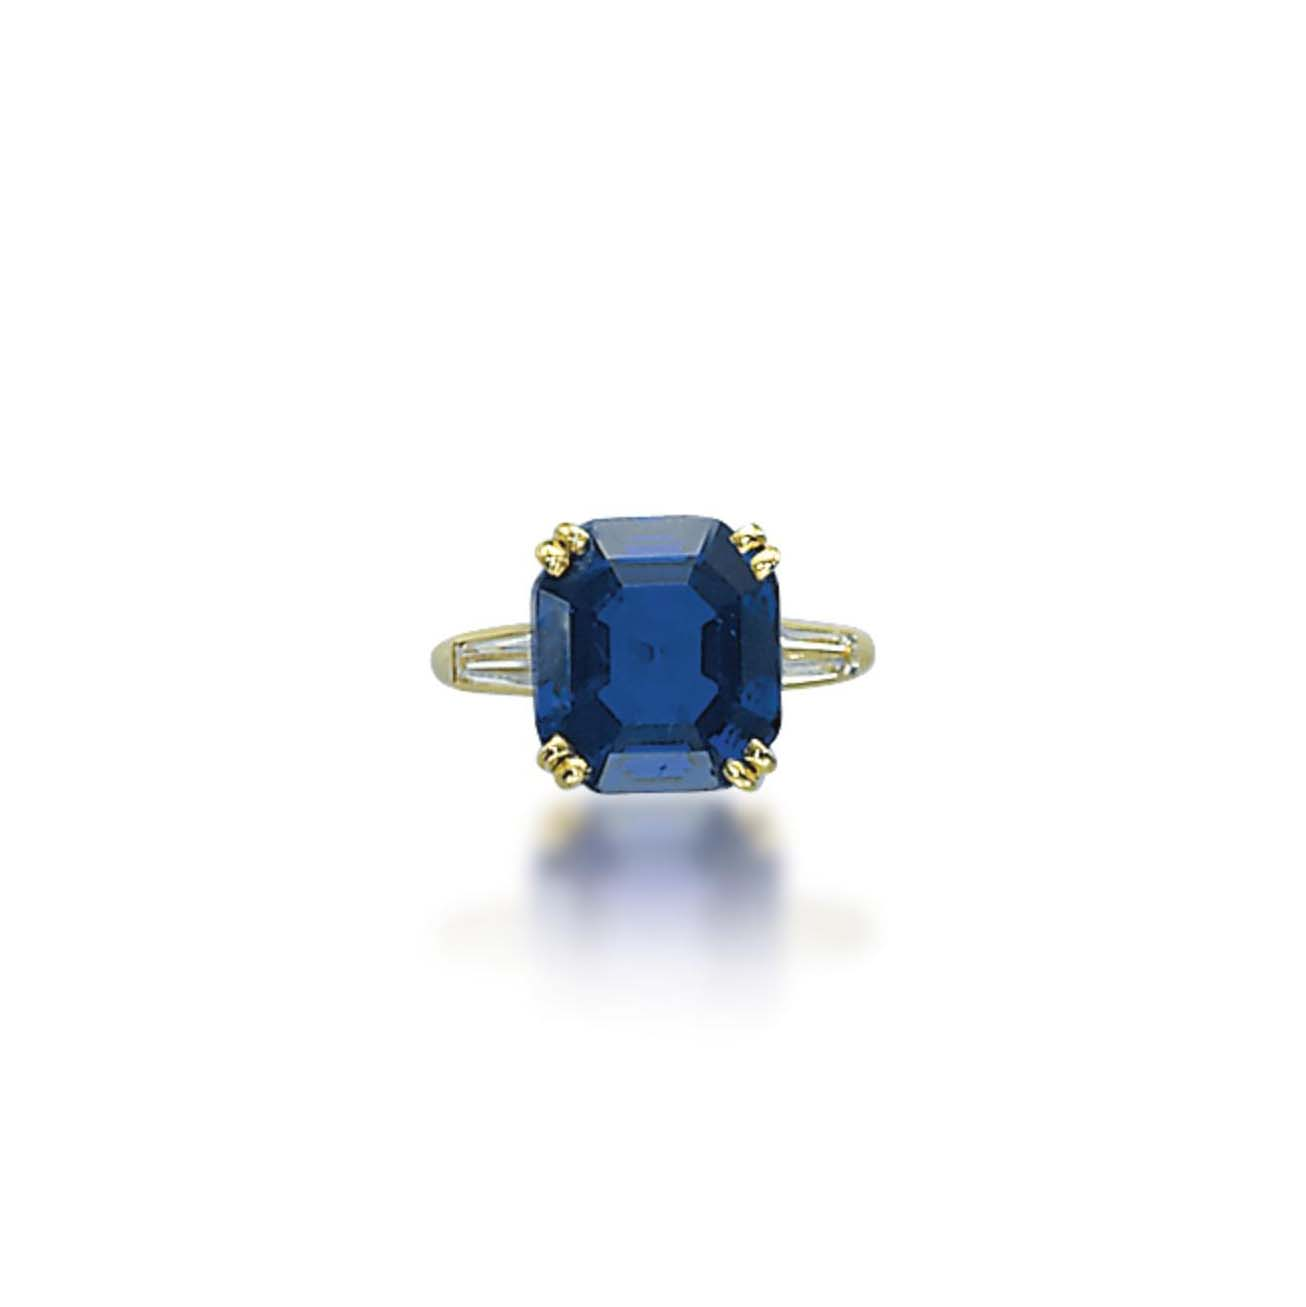 A SAPPHIRE AND DIAMOND RING, BY BOUCHERON